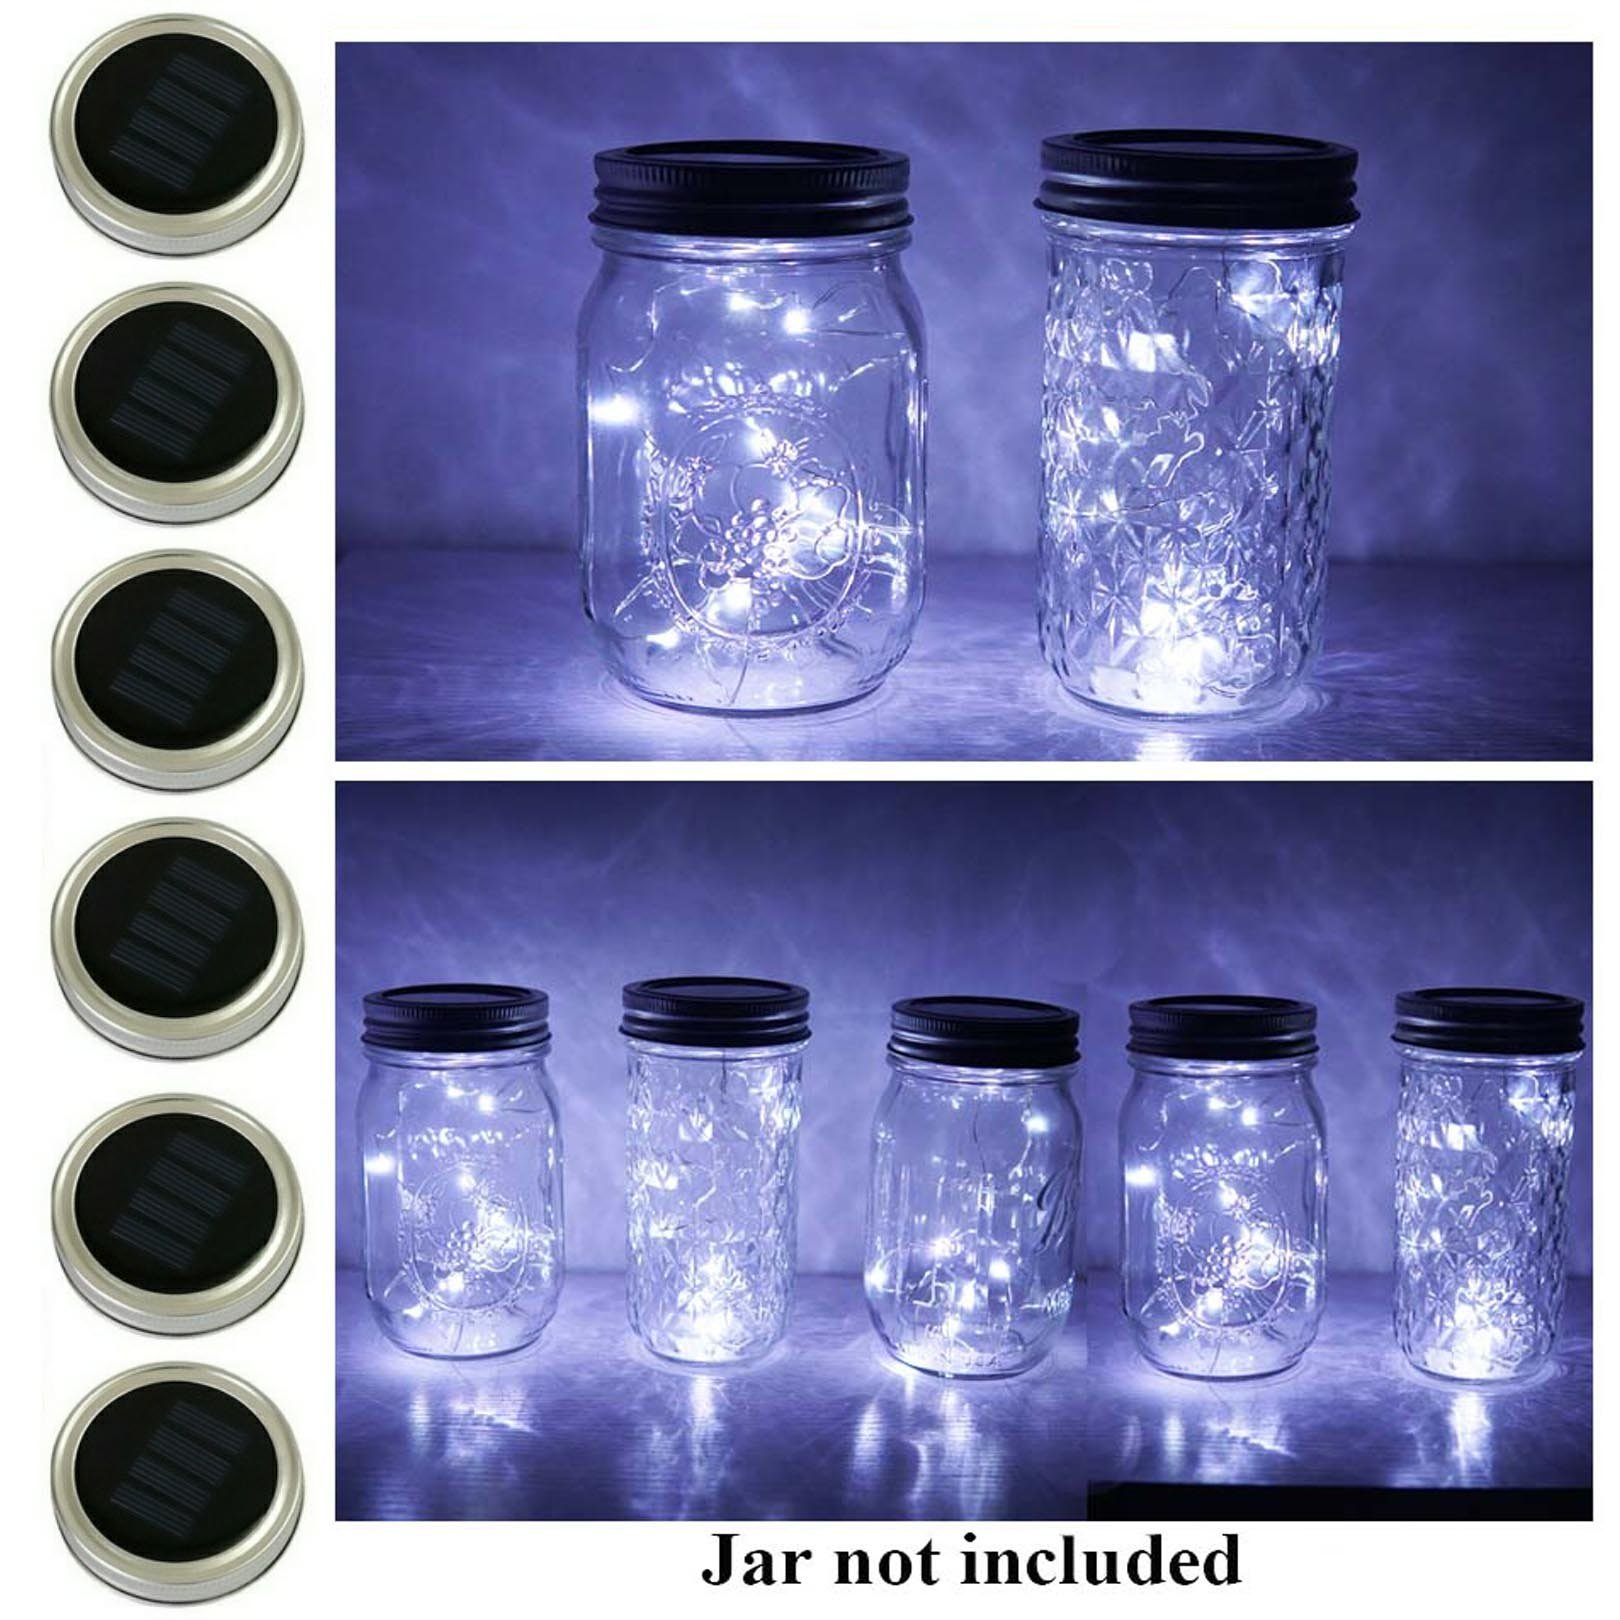 6 Pack Mason Jar Lights, 10 LED Solar Cold White Fairy String Lights Lids Insert for Garden Deck Patio Party Wedding Christmas Decorative Lighting Fit for Regular Mouth Jars …